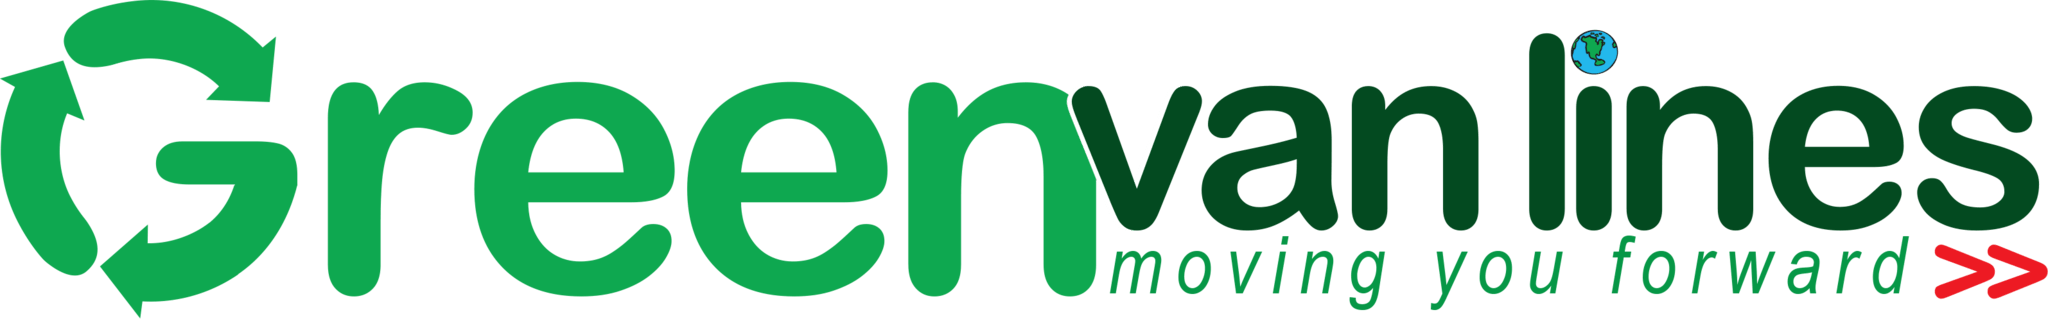 Green Van Lines Company – Dallas Introduces a Green Initiative to Help Save the Environment While Helping Clients Save Money 6